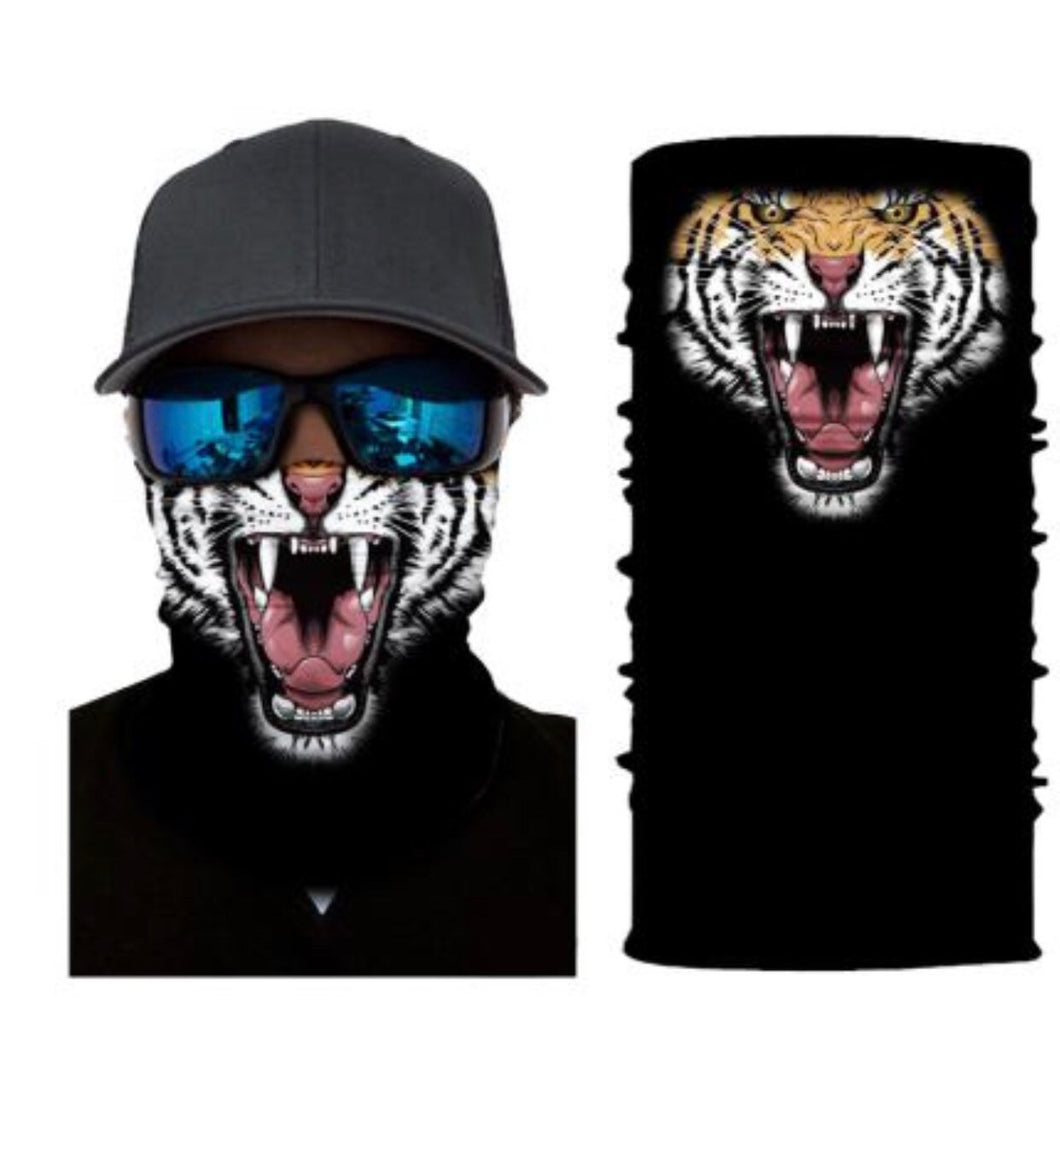 Tiger Face Mask Covering Bandana Gaiter  - Ships Next Day USPS First Class